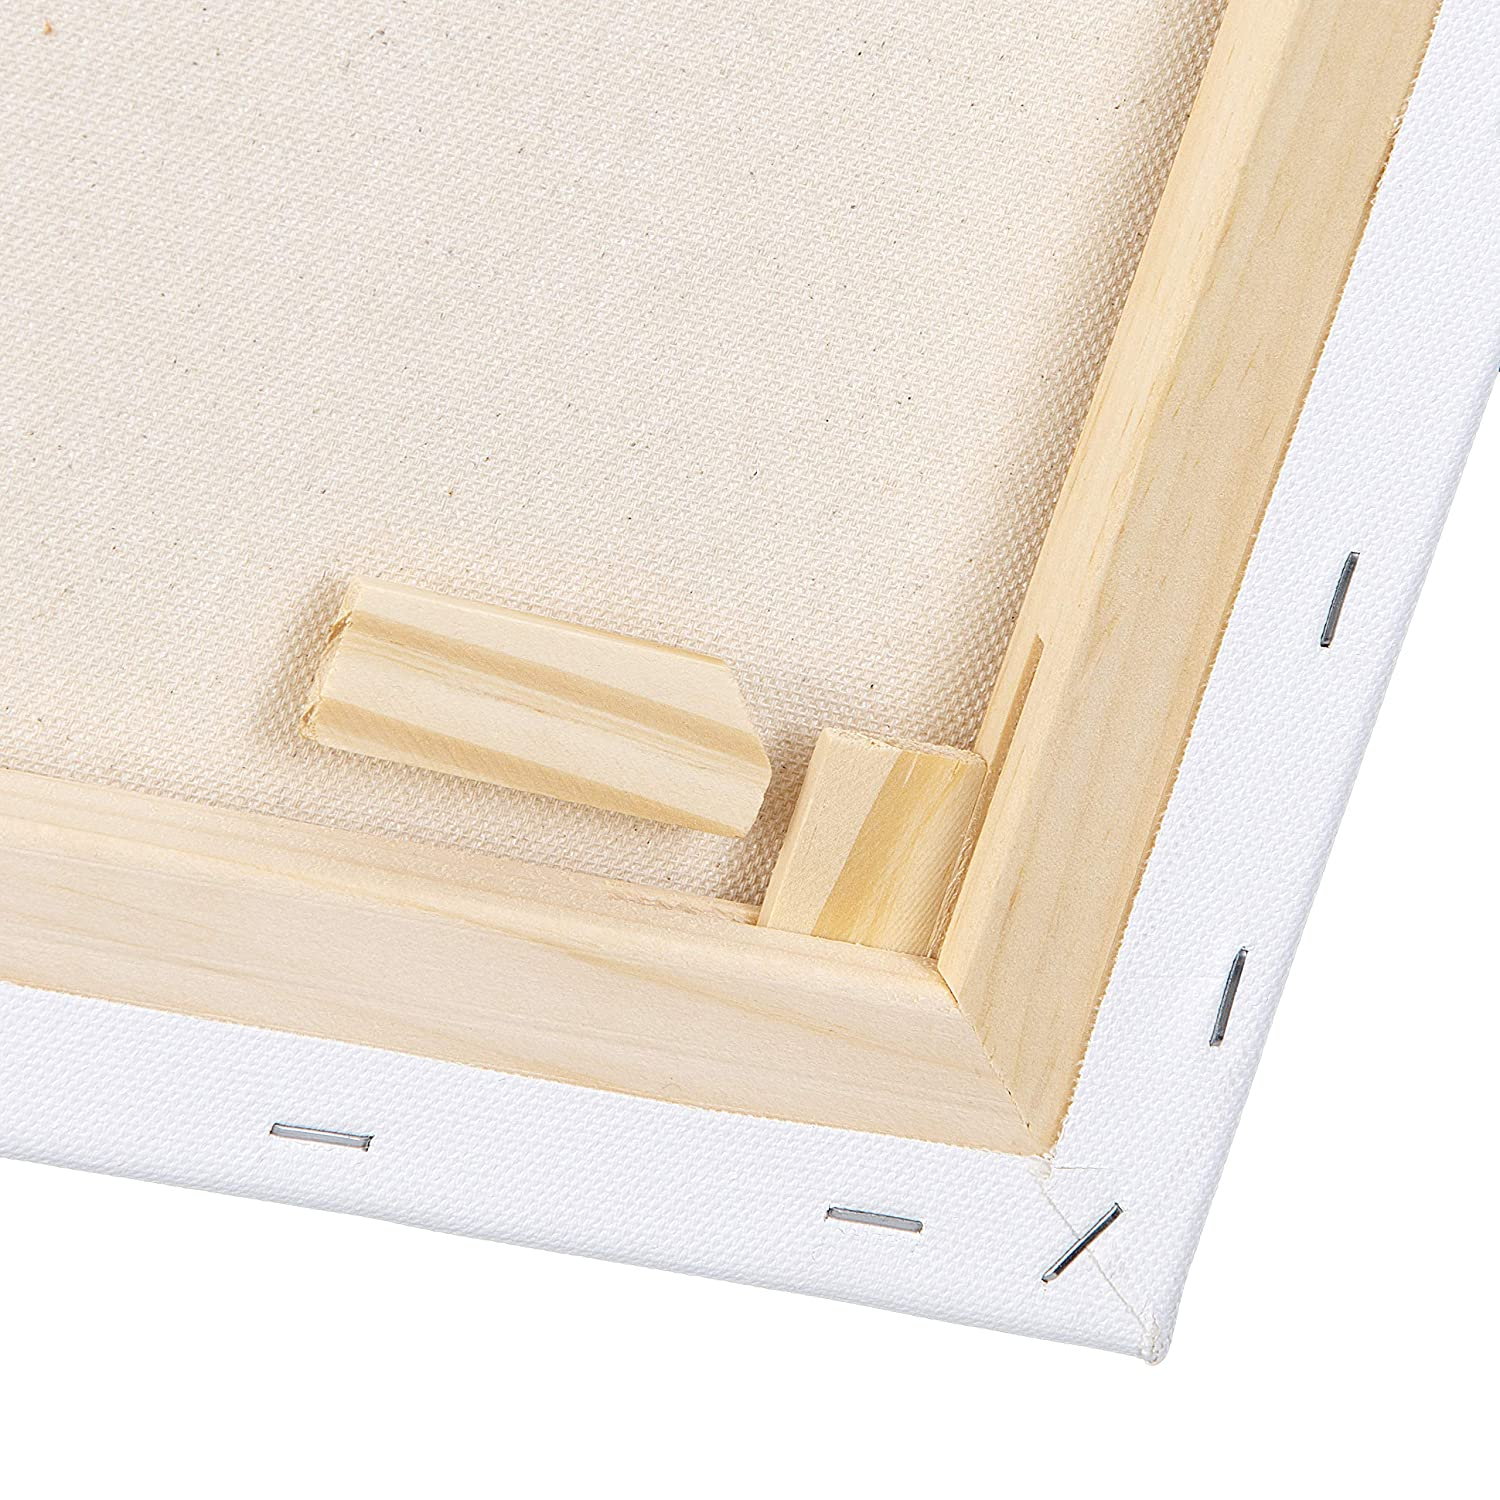 "Double Acrylic Primed Canvas on a Wood Frame Darice Cotton Stretched Canvas Medium Texture Canvas Acid Free 11/"" x 14/"" Canvas for Acrylic Paints Pack of 2"